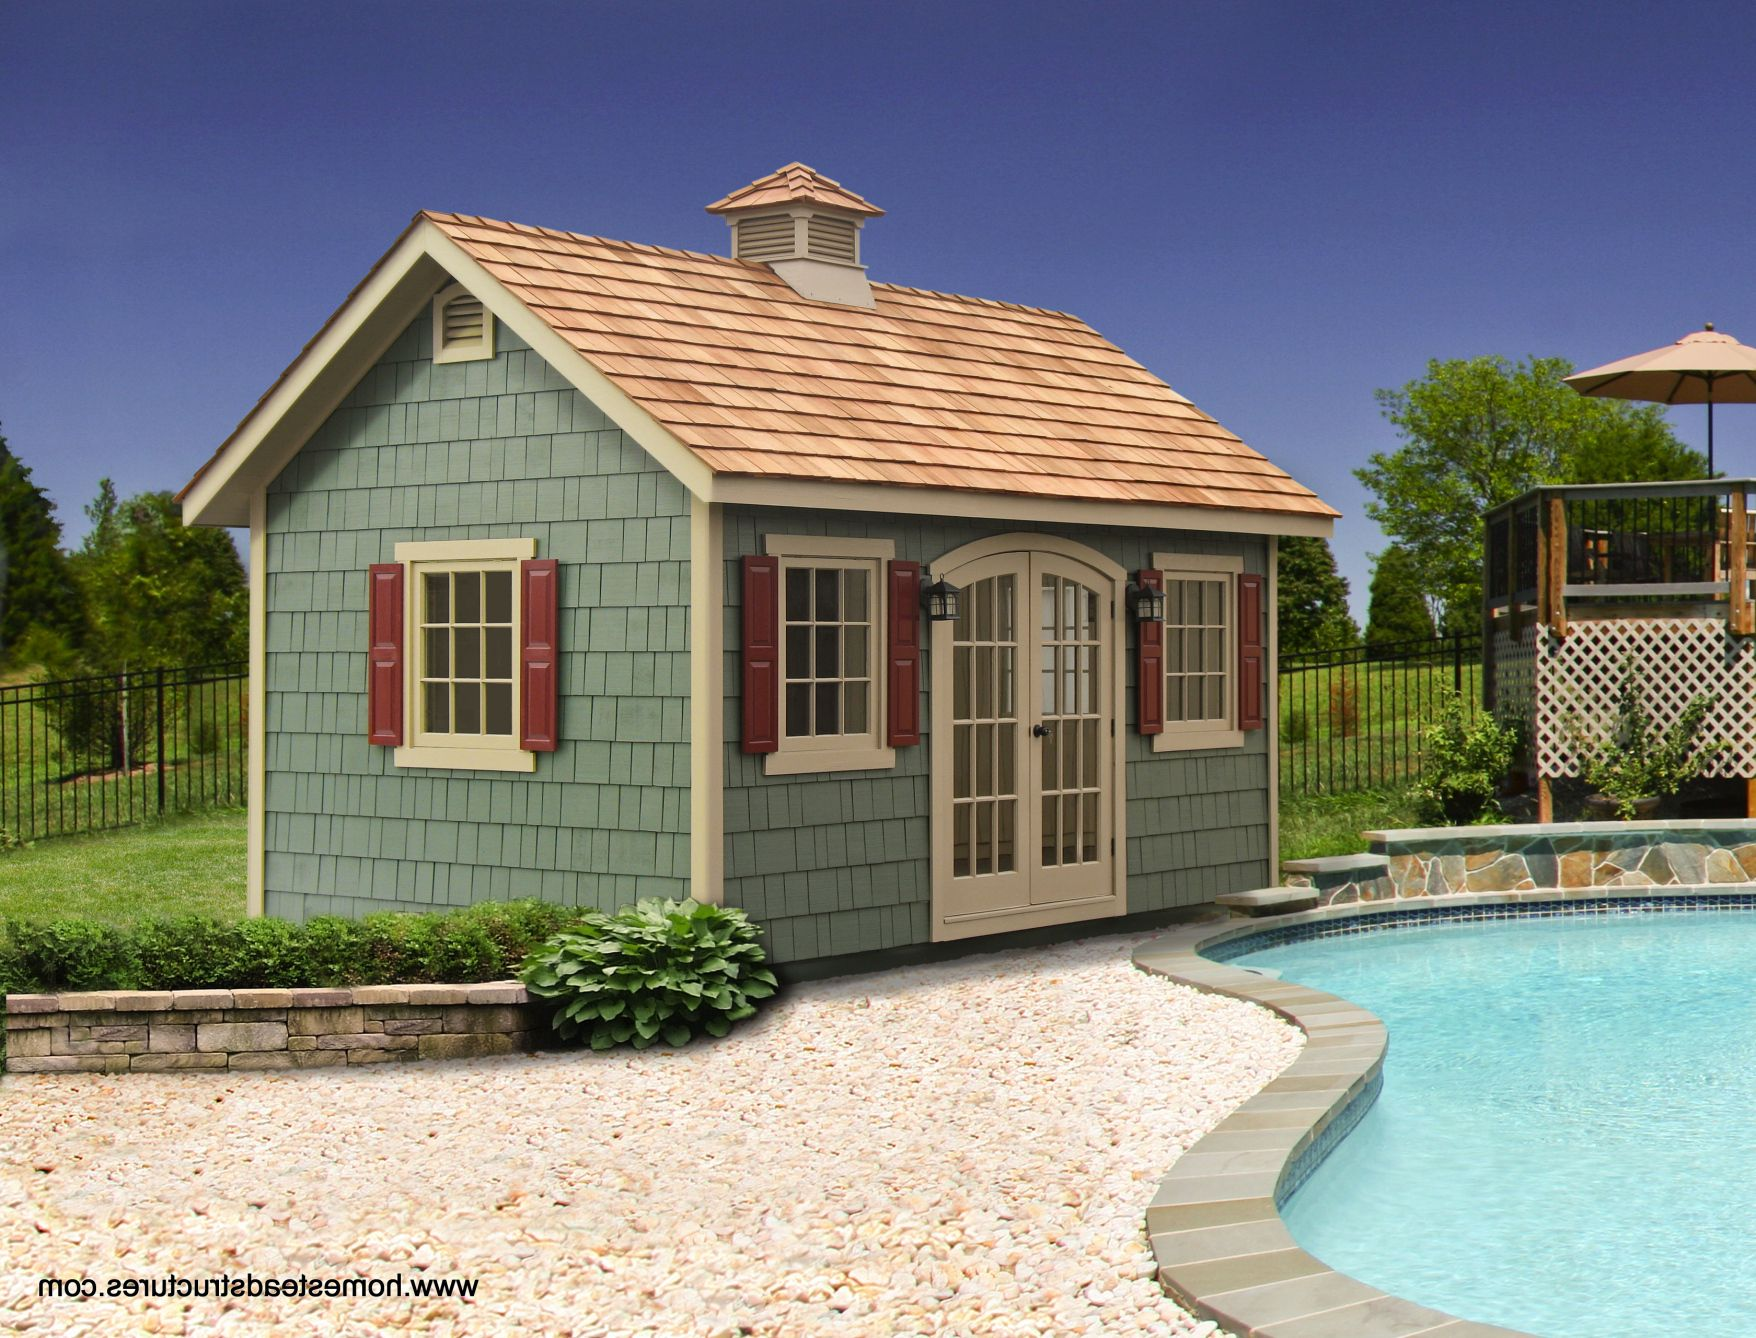 Charmant Luxury Pool Pump House Shed Design Check More At Http://www.jnnsysy